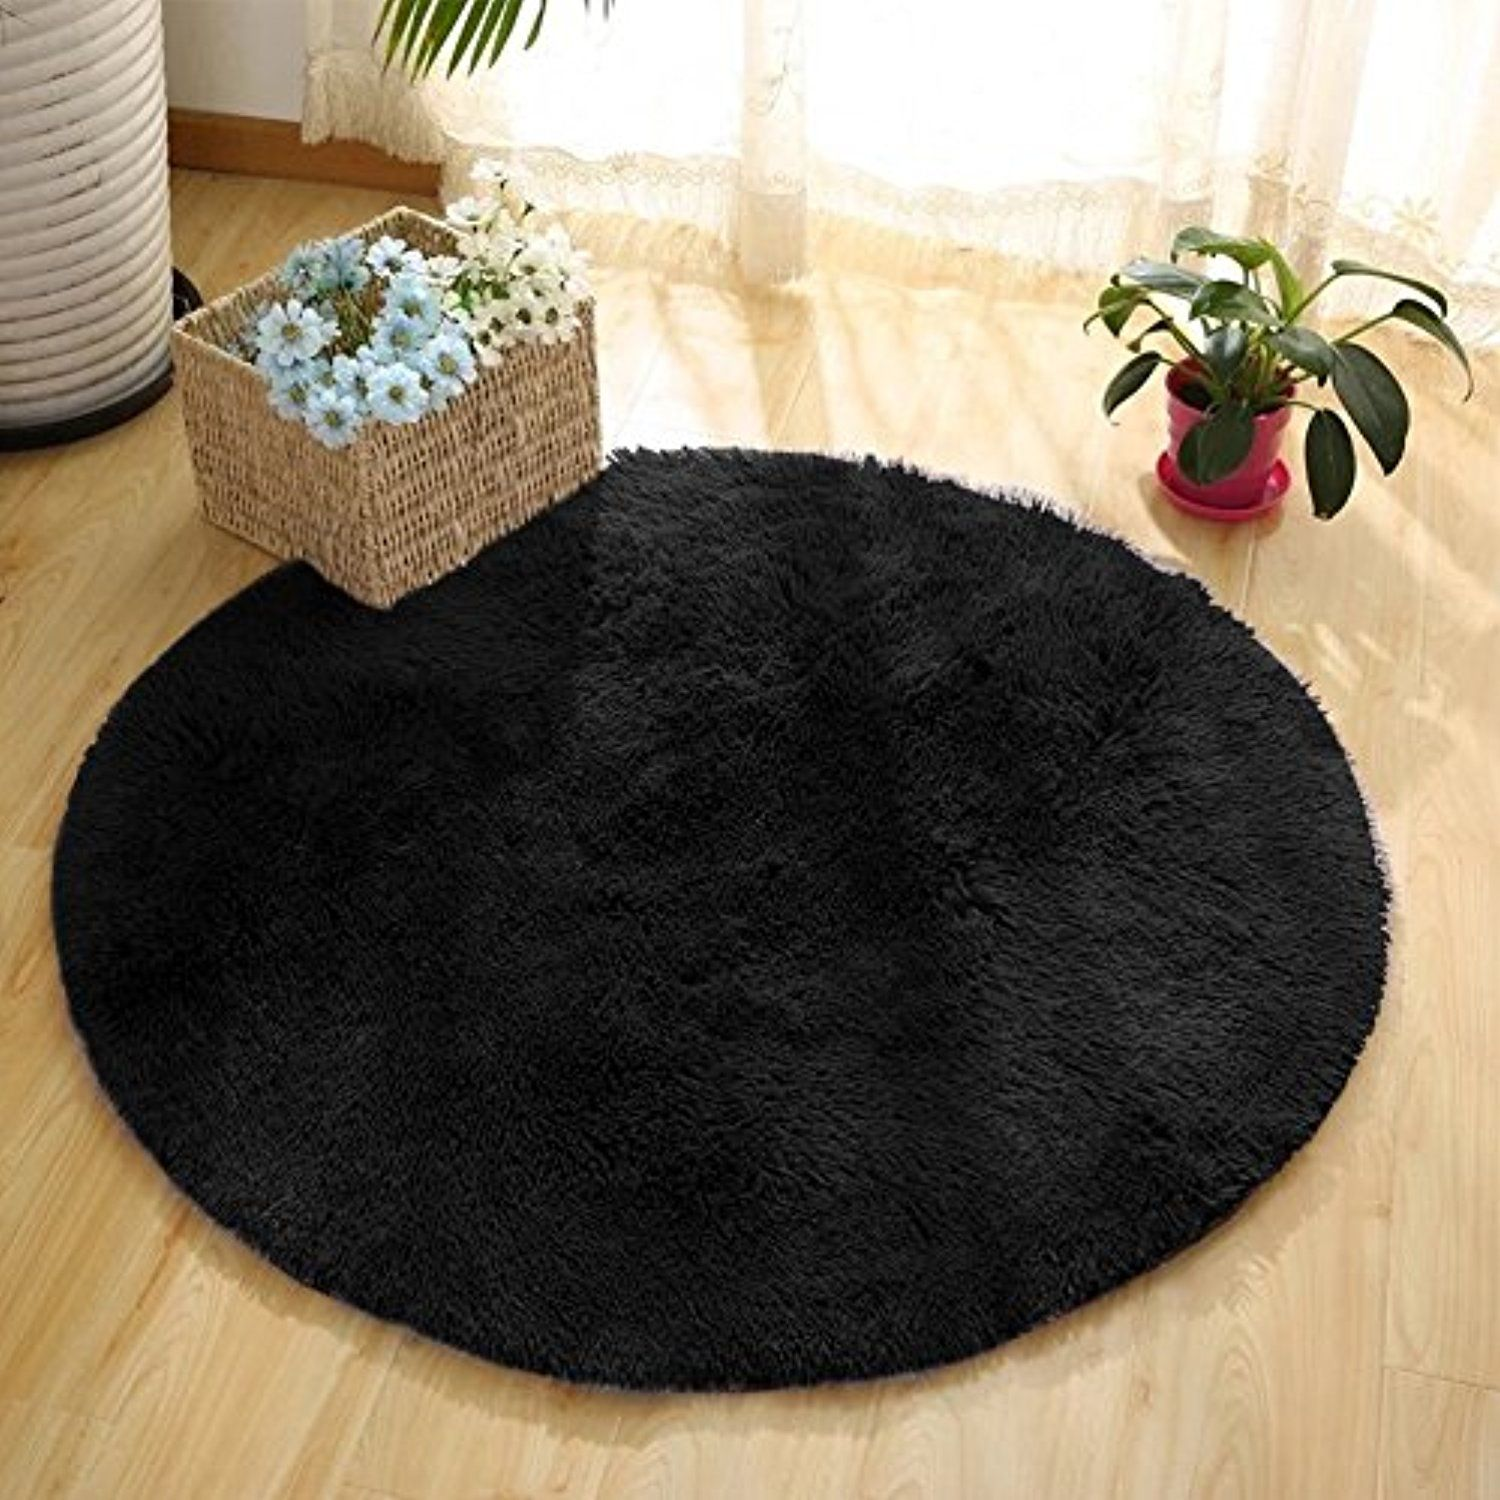 Yj Gwl Ultra Soft Round Area Rugs For Bedroom Anti Slip Shaggy